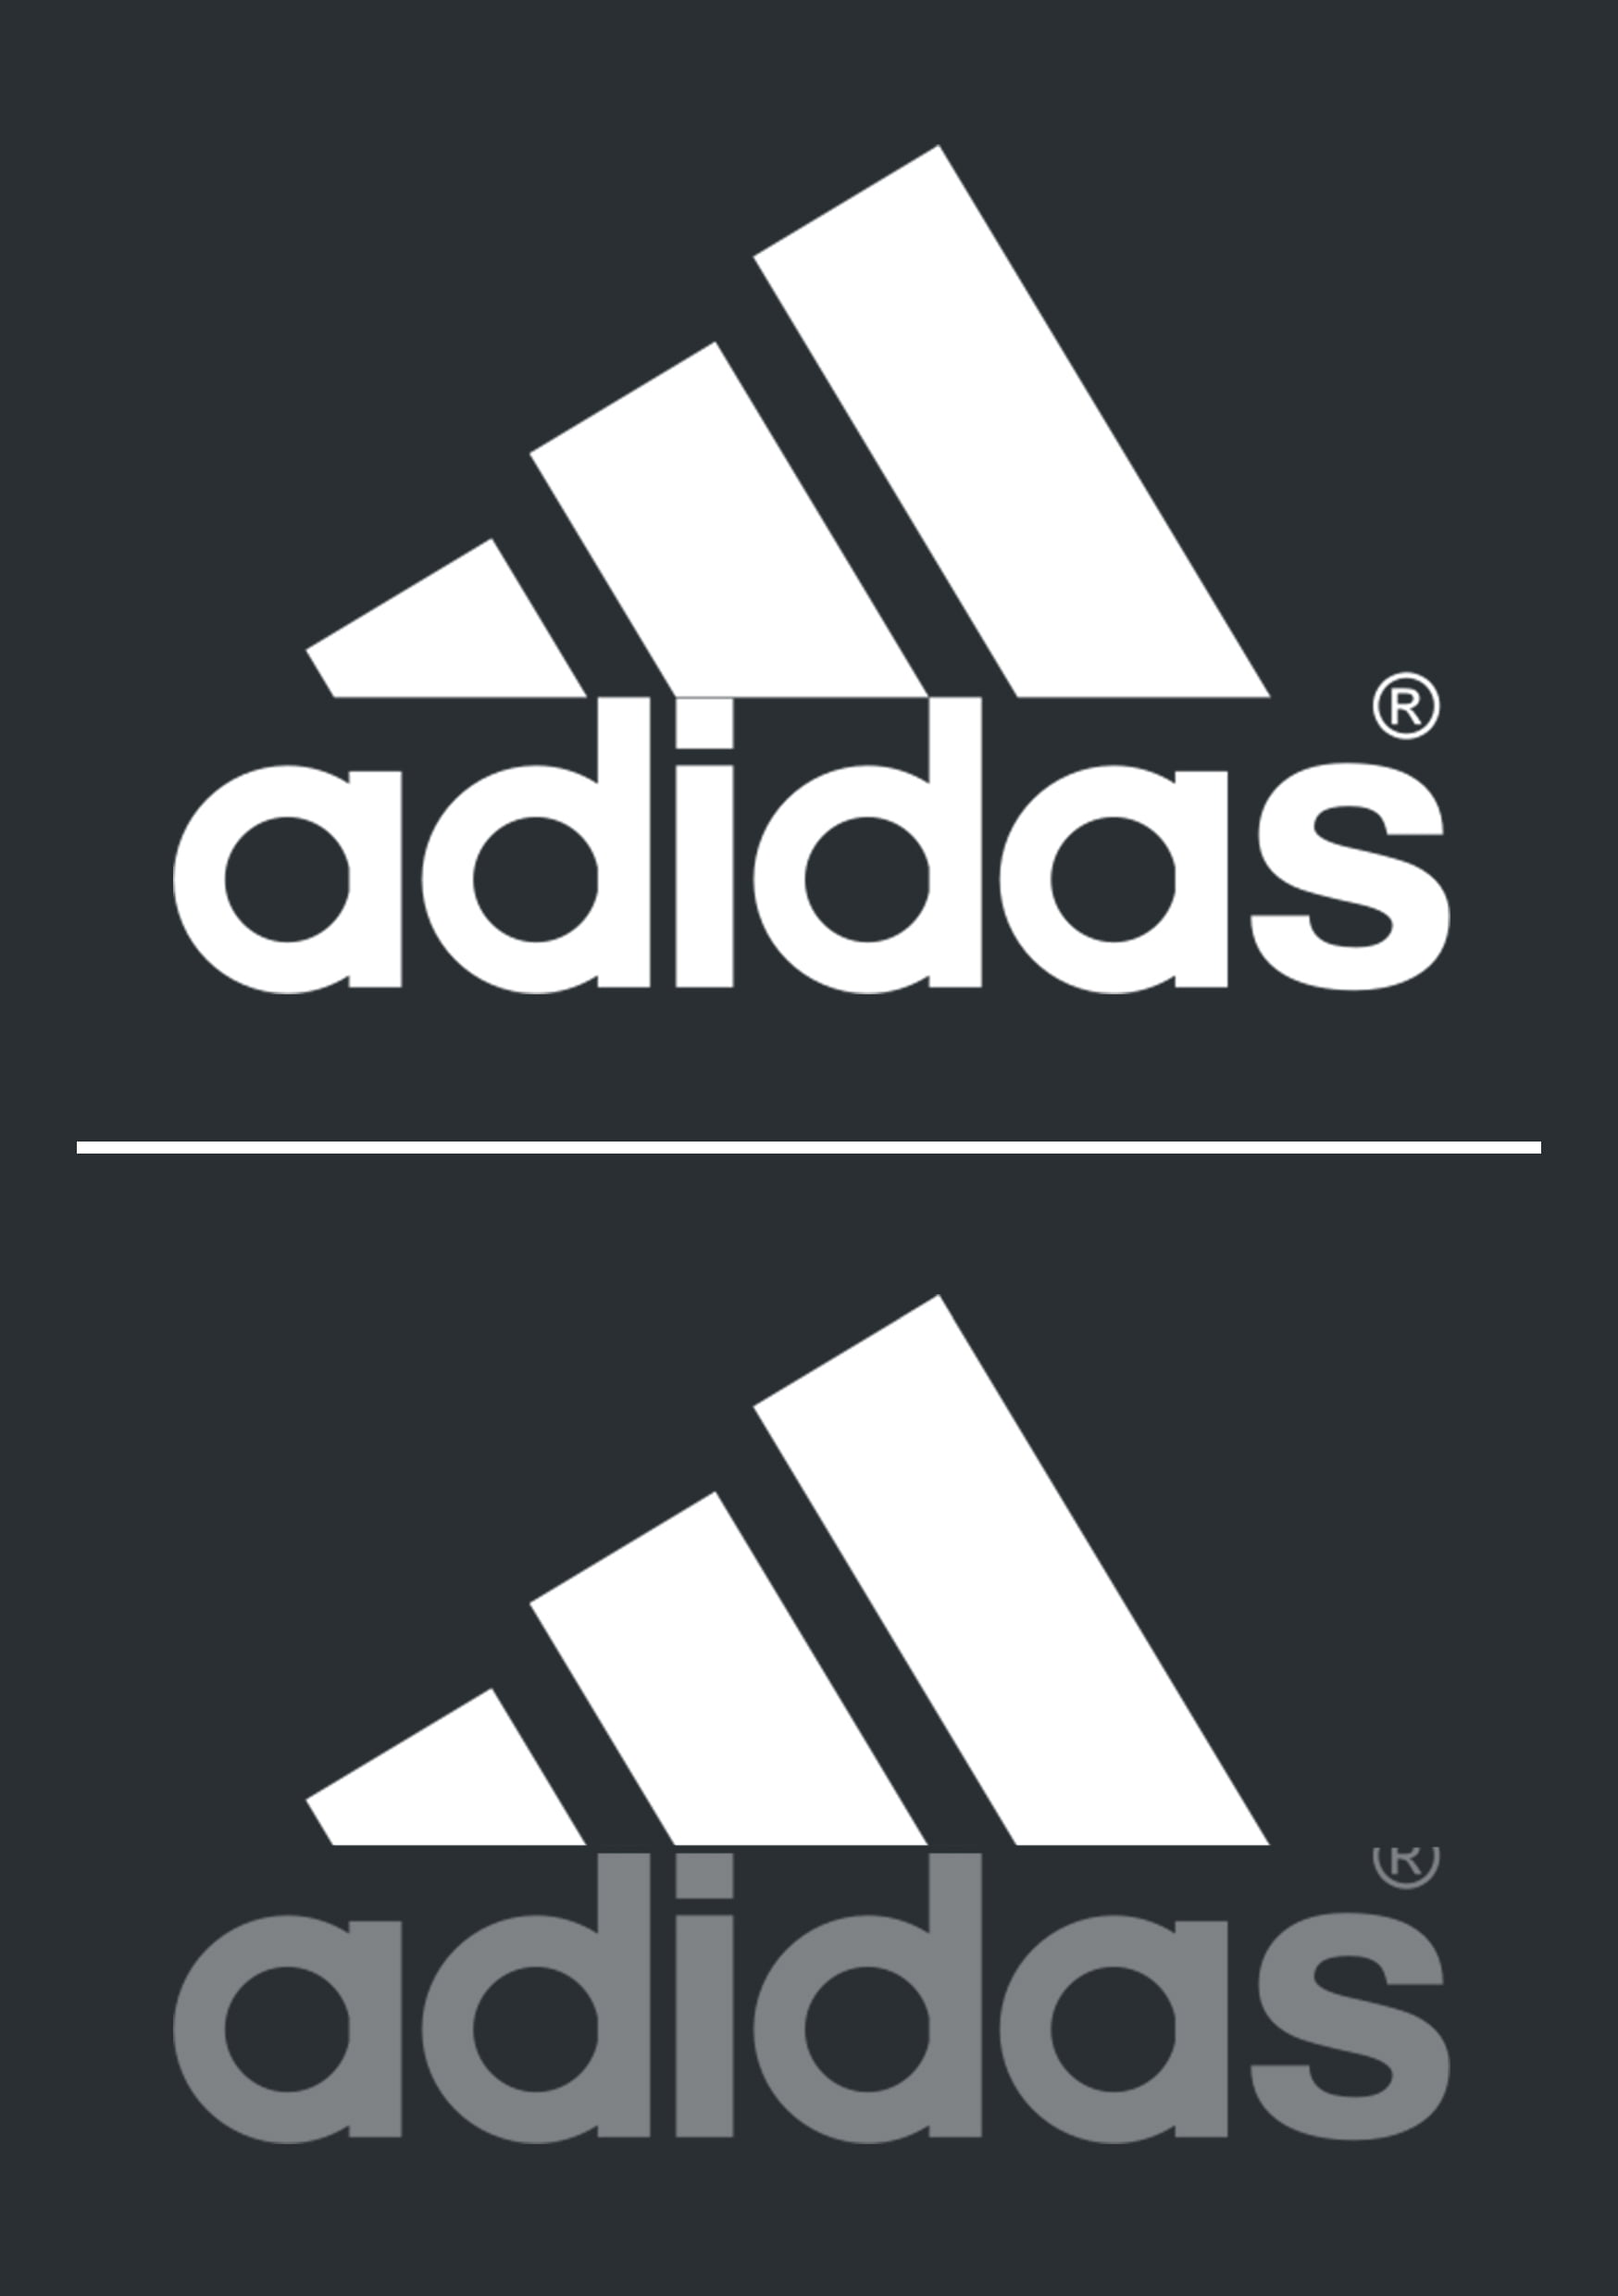 Every Brand Logo Has Something Hidden In It To Give It Meaning Can